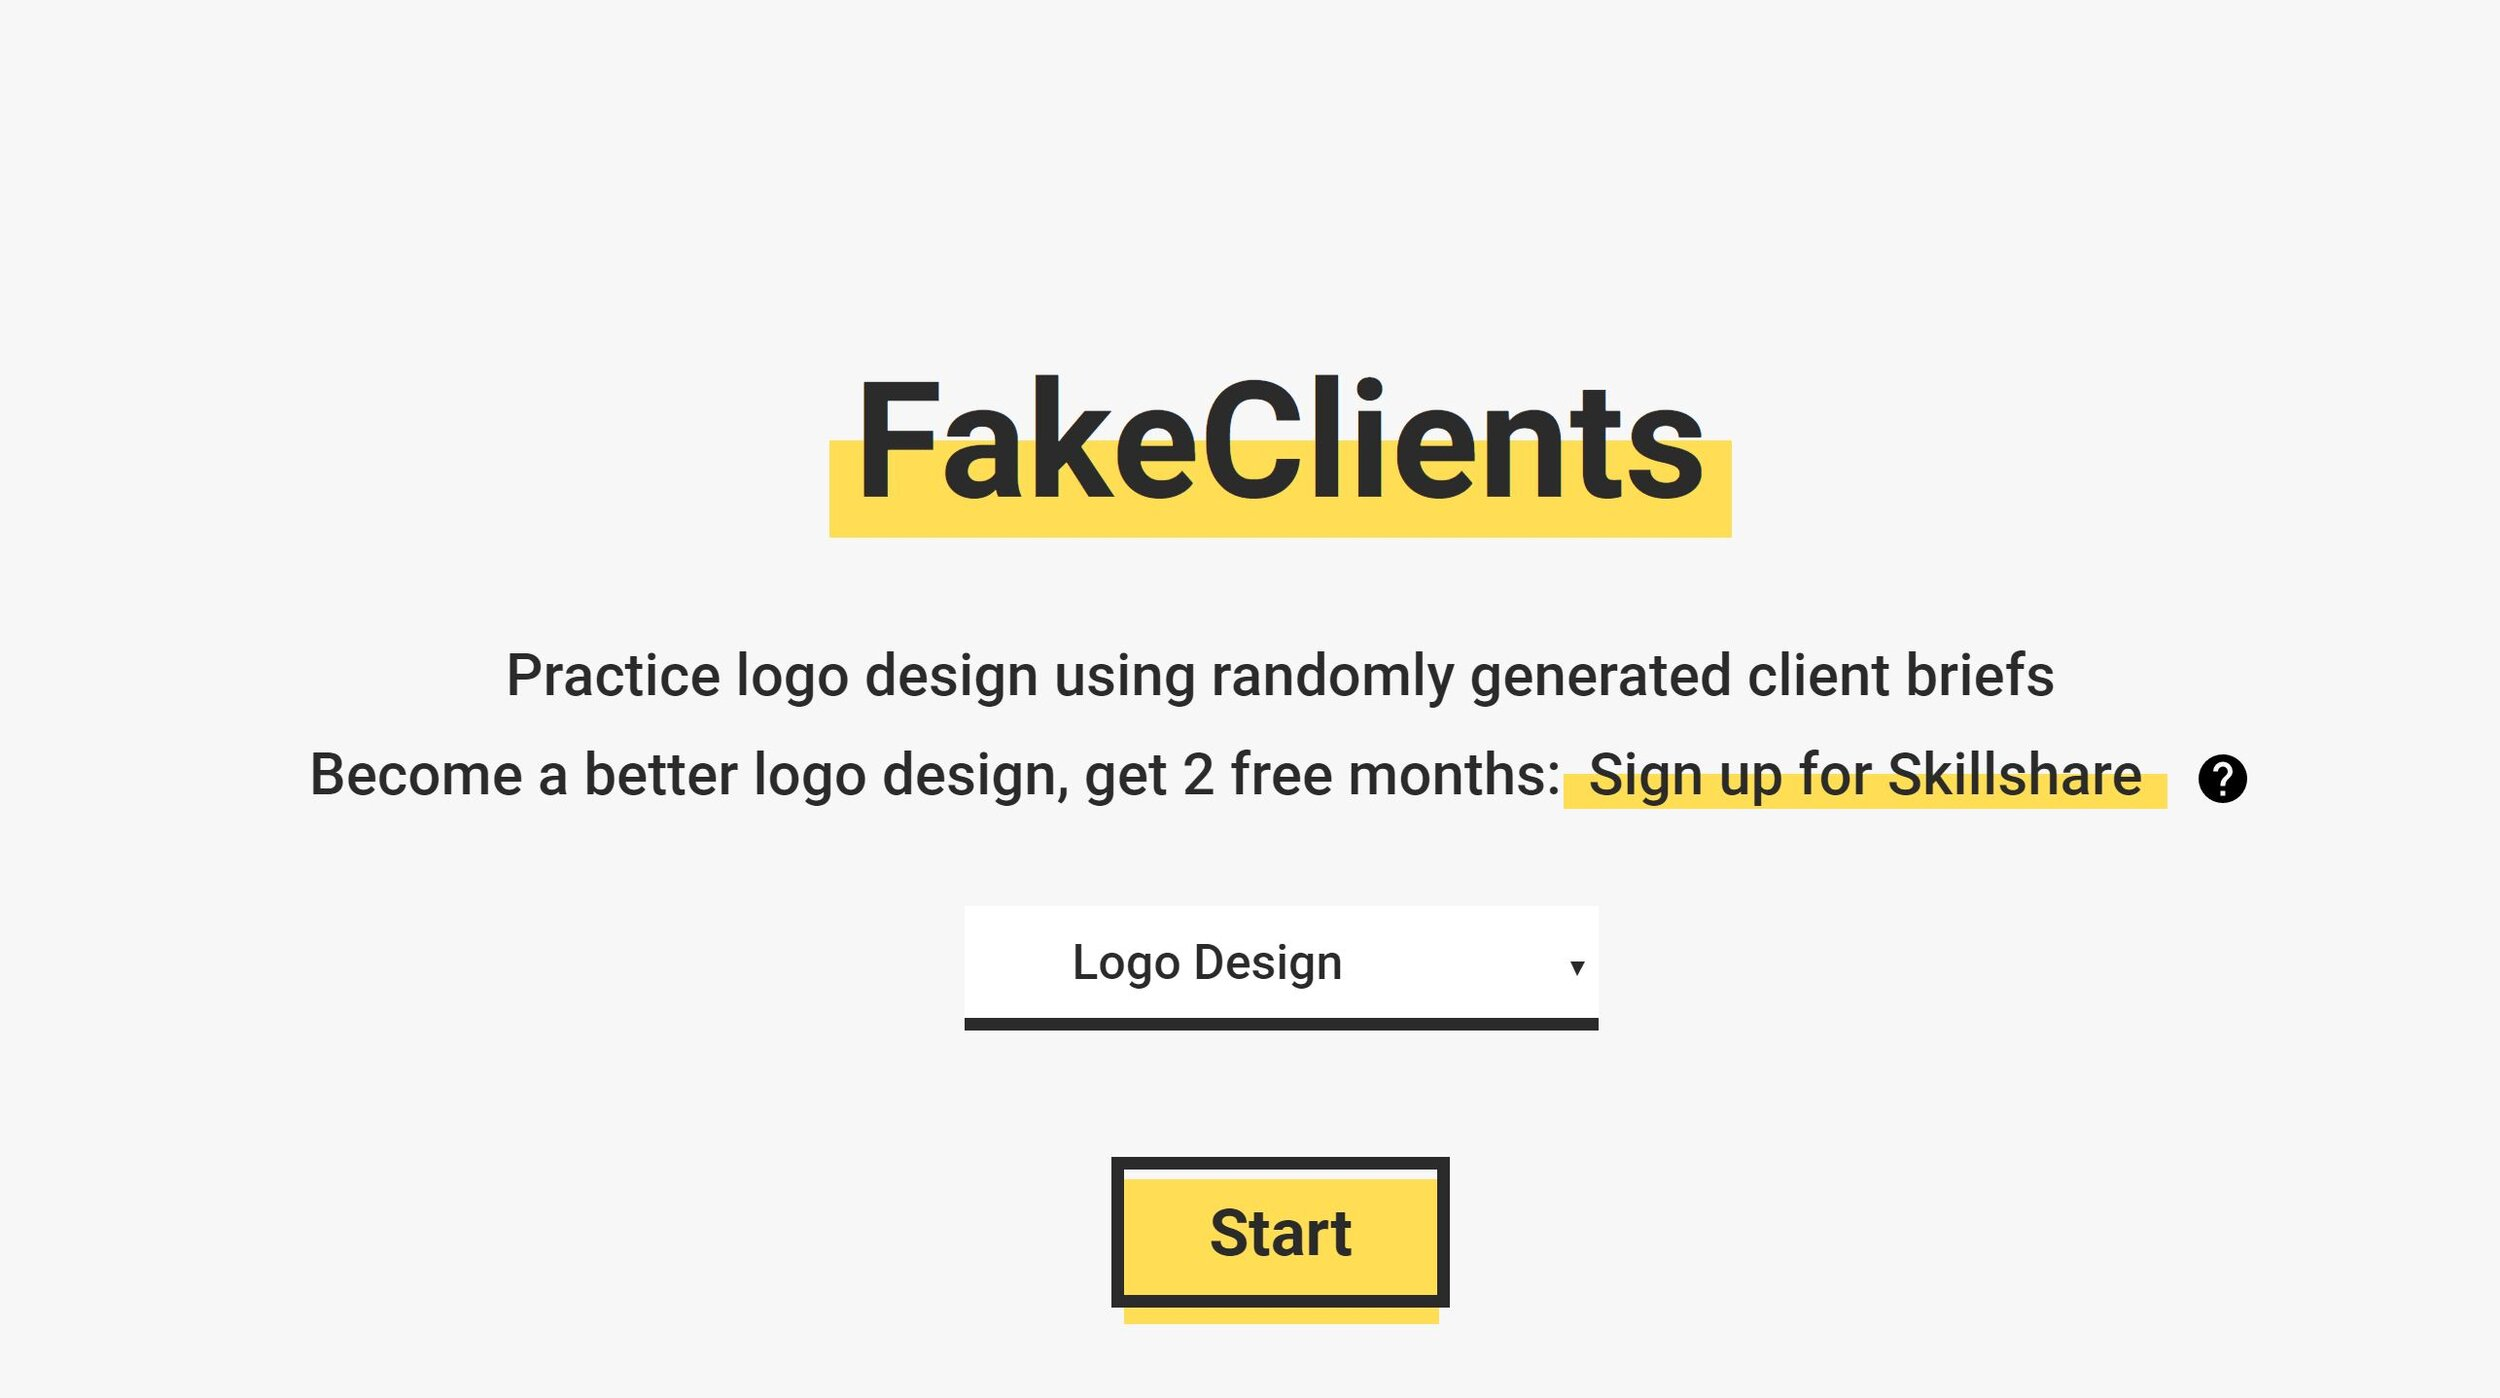 FakeClients - When you're stalled and looking for some inspiration for practice design, FakeClients can help you get started.